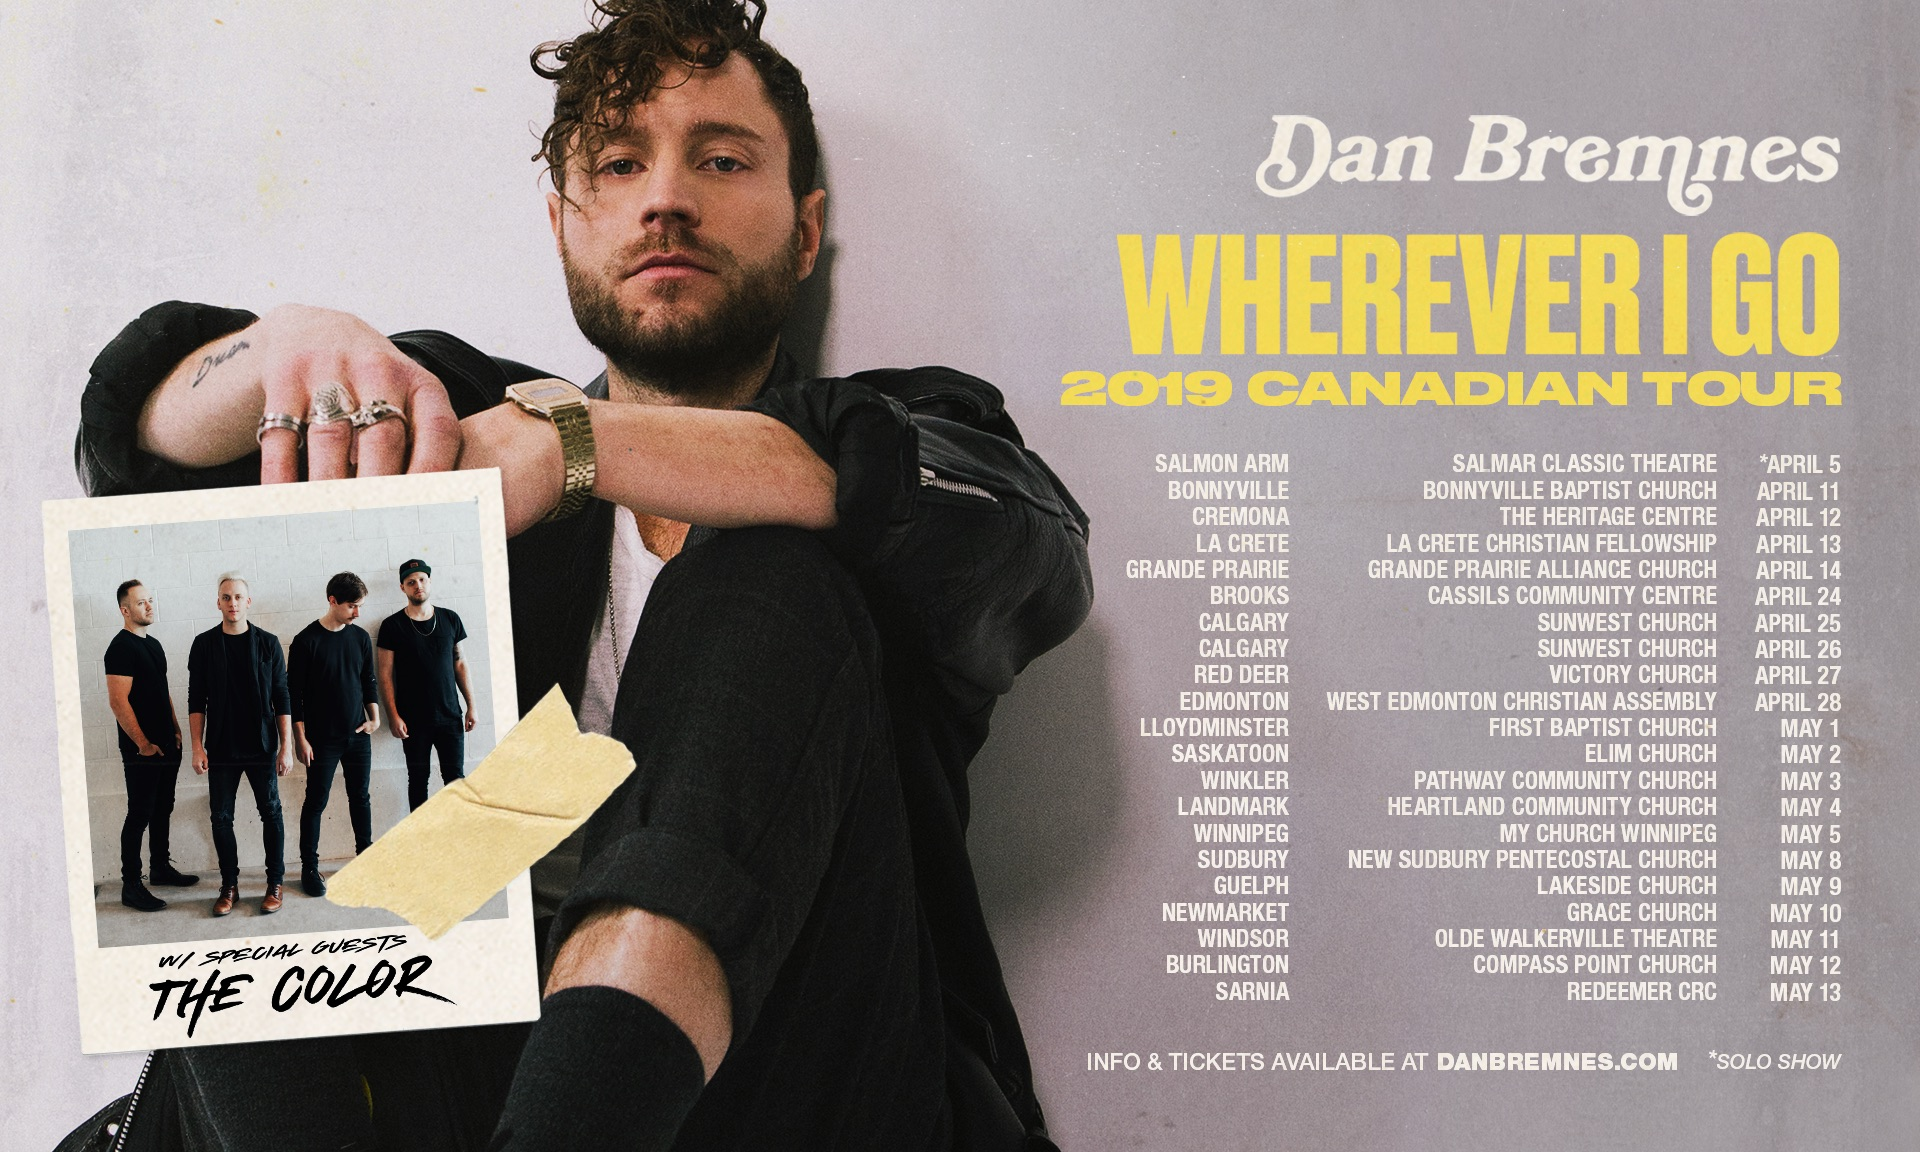 Tickets for Dan Bremnes, Wherever I Go Tour with The Color in Saskatoon from BuzzTix